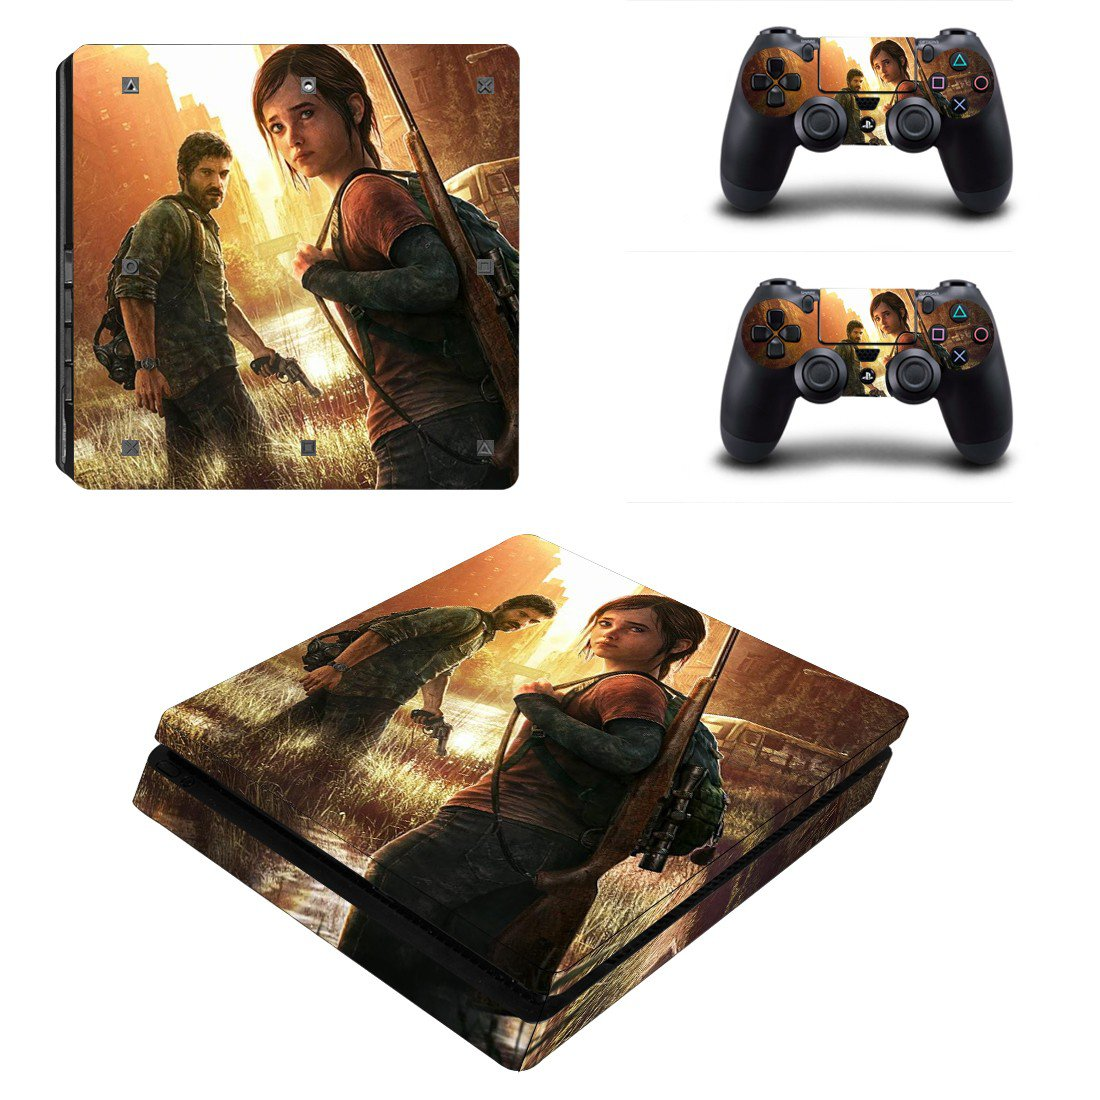 Last of us Play Station 4 slim skin decal for console and 2 controllers